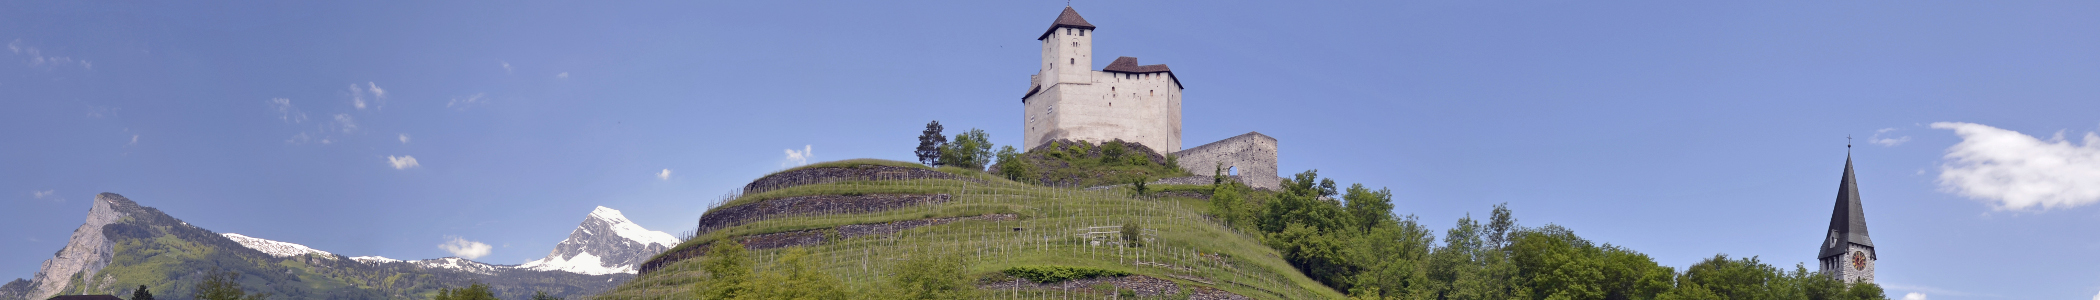 Liechtenstein – Travel guide at Wikivoyage